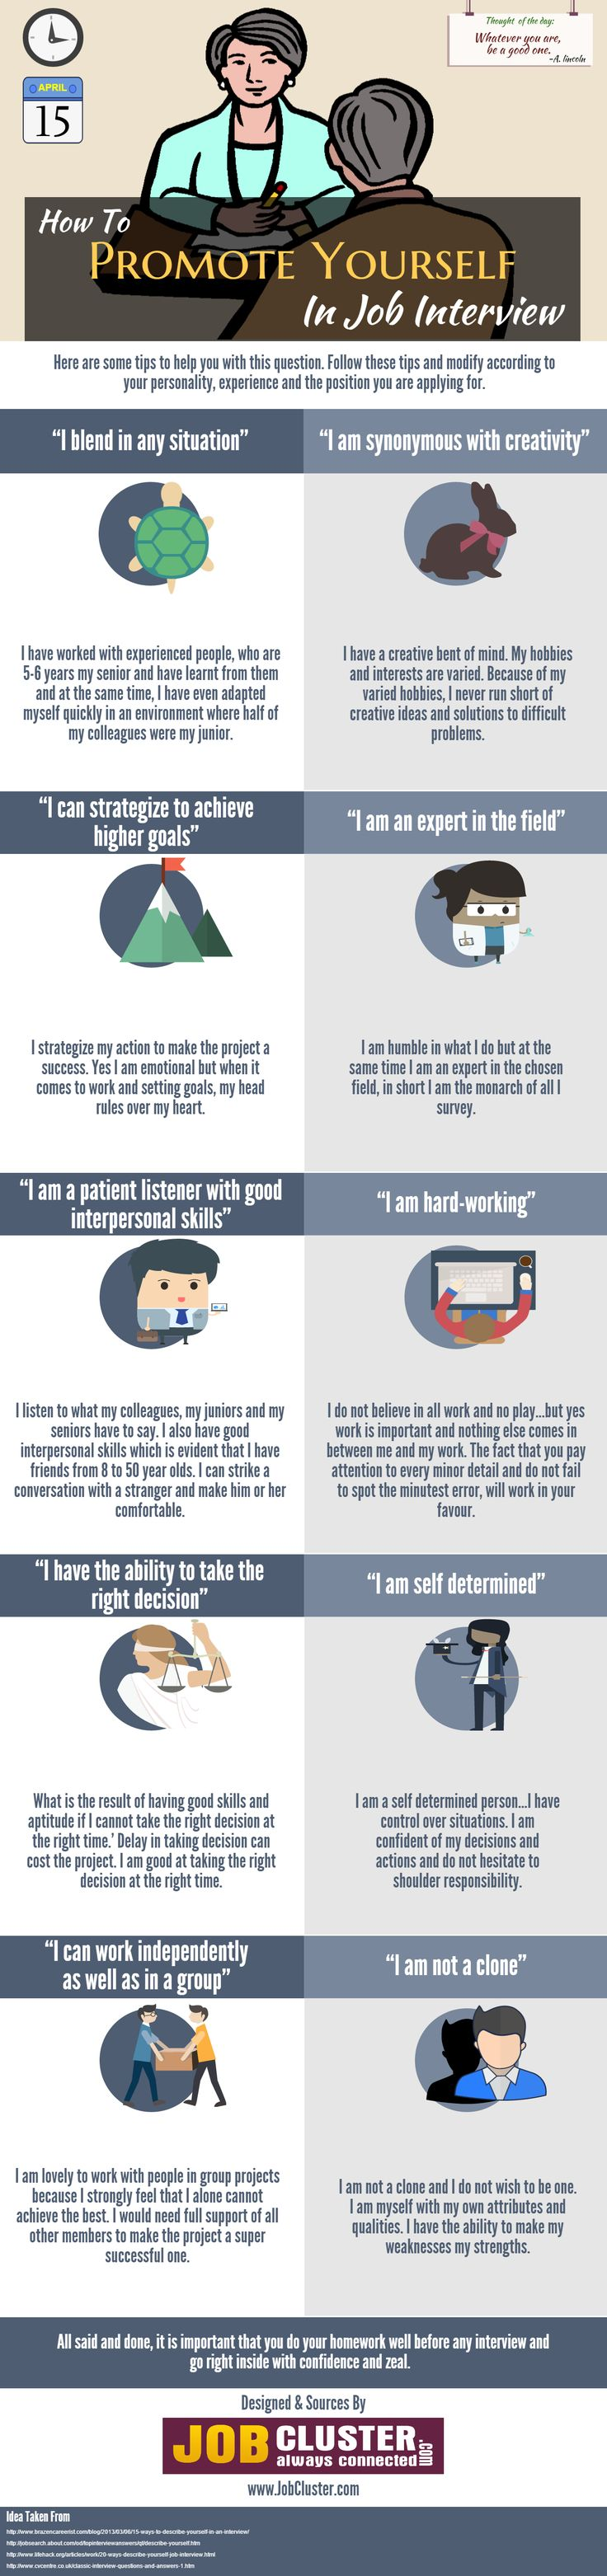 ideas about job interview tips job interview self promotion in job interview infographic